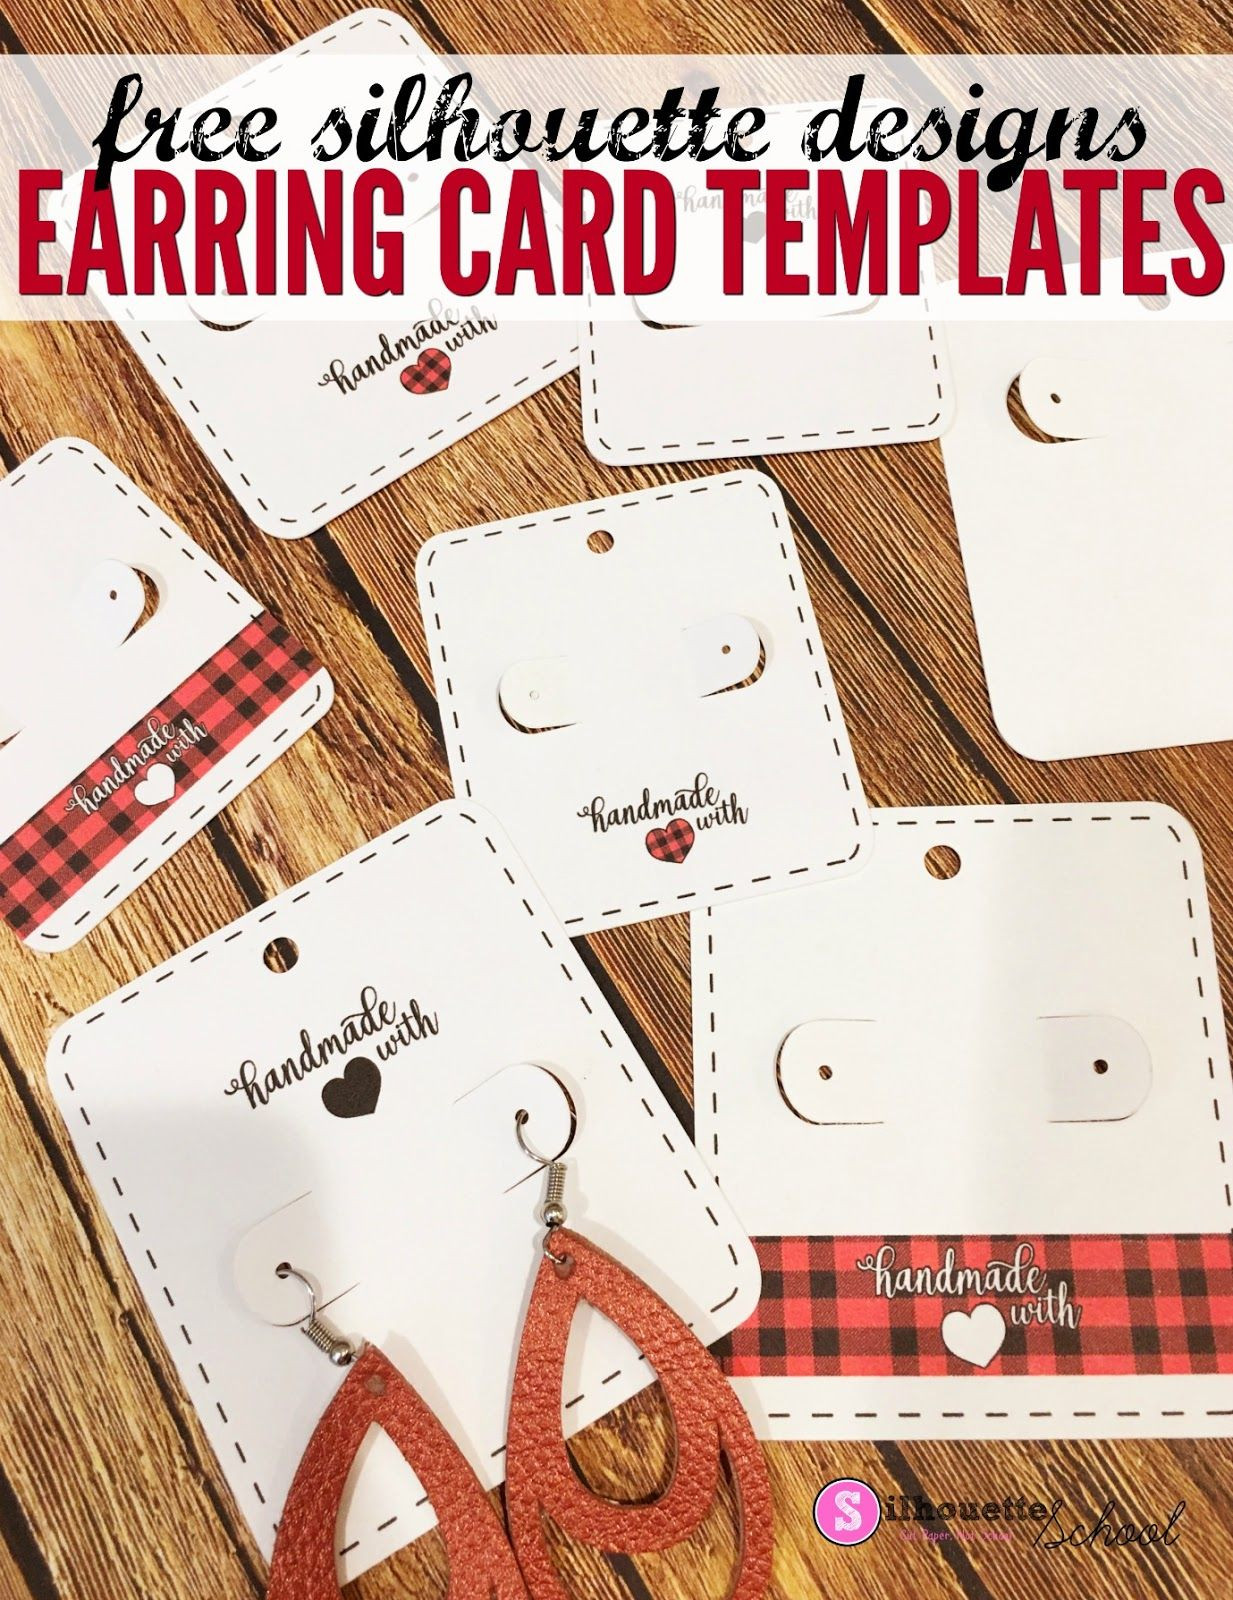 Earring Card Template Free